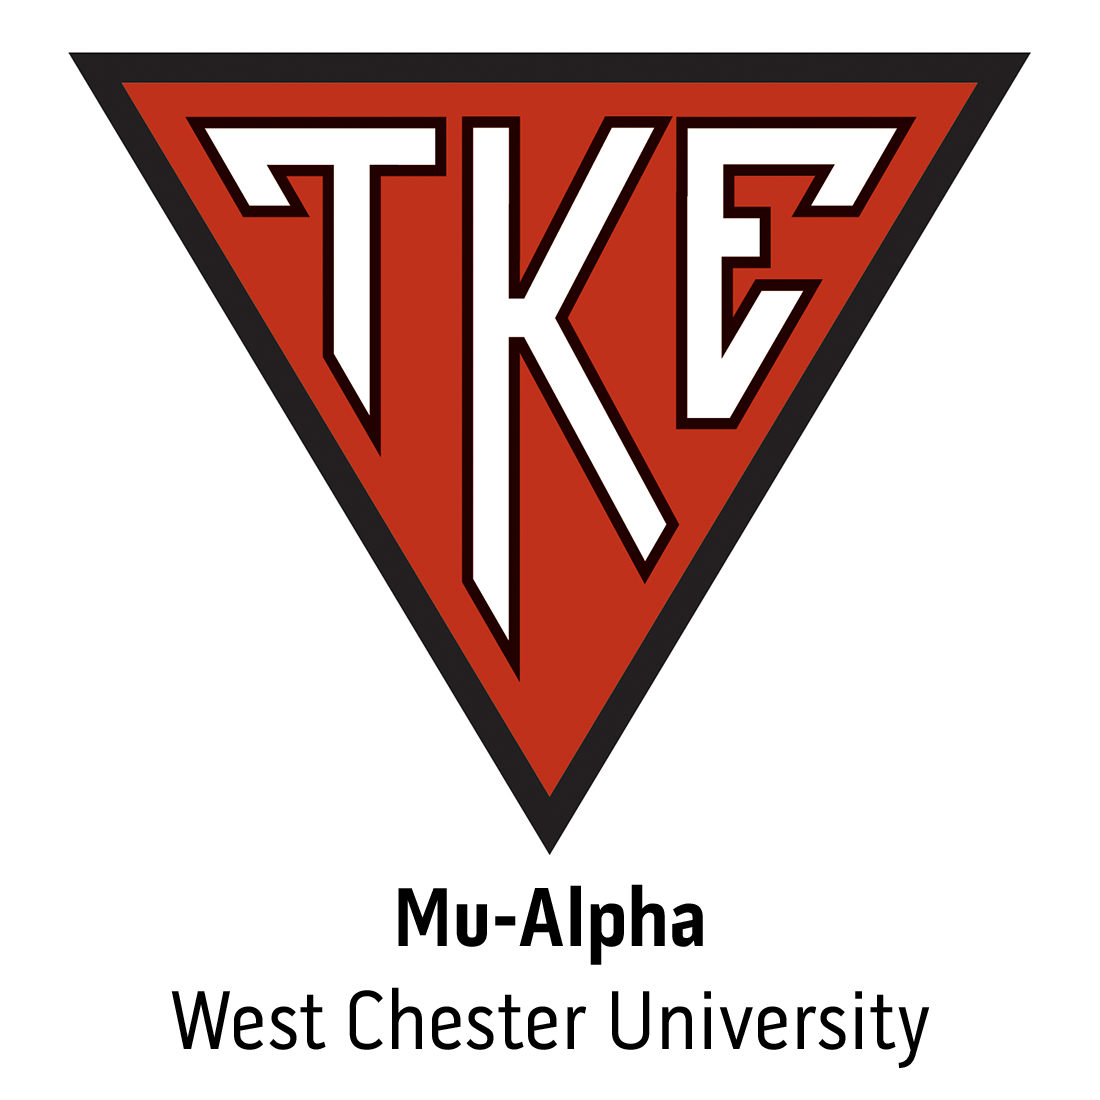 Mu-Alpha Chapter at West Chester University